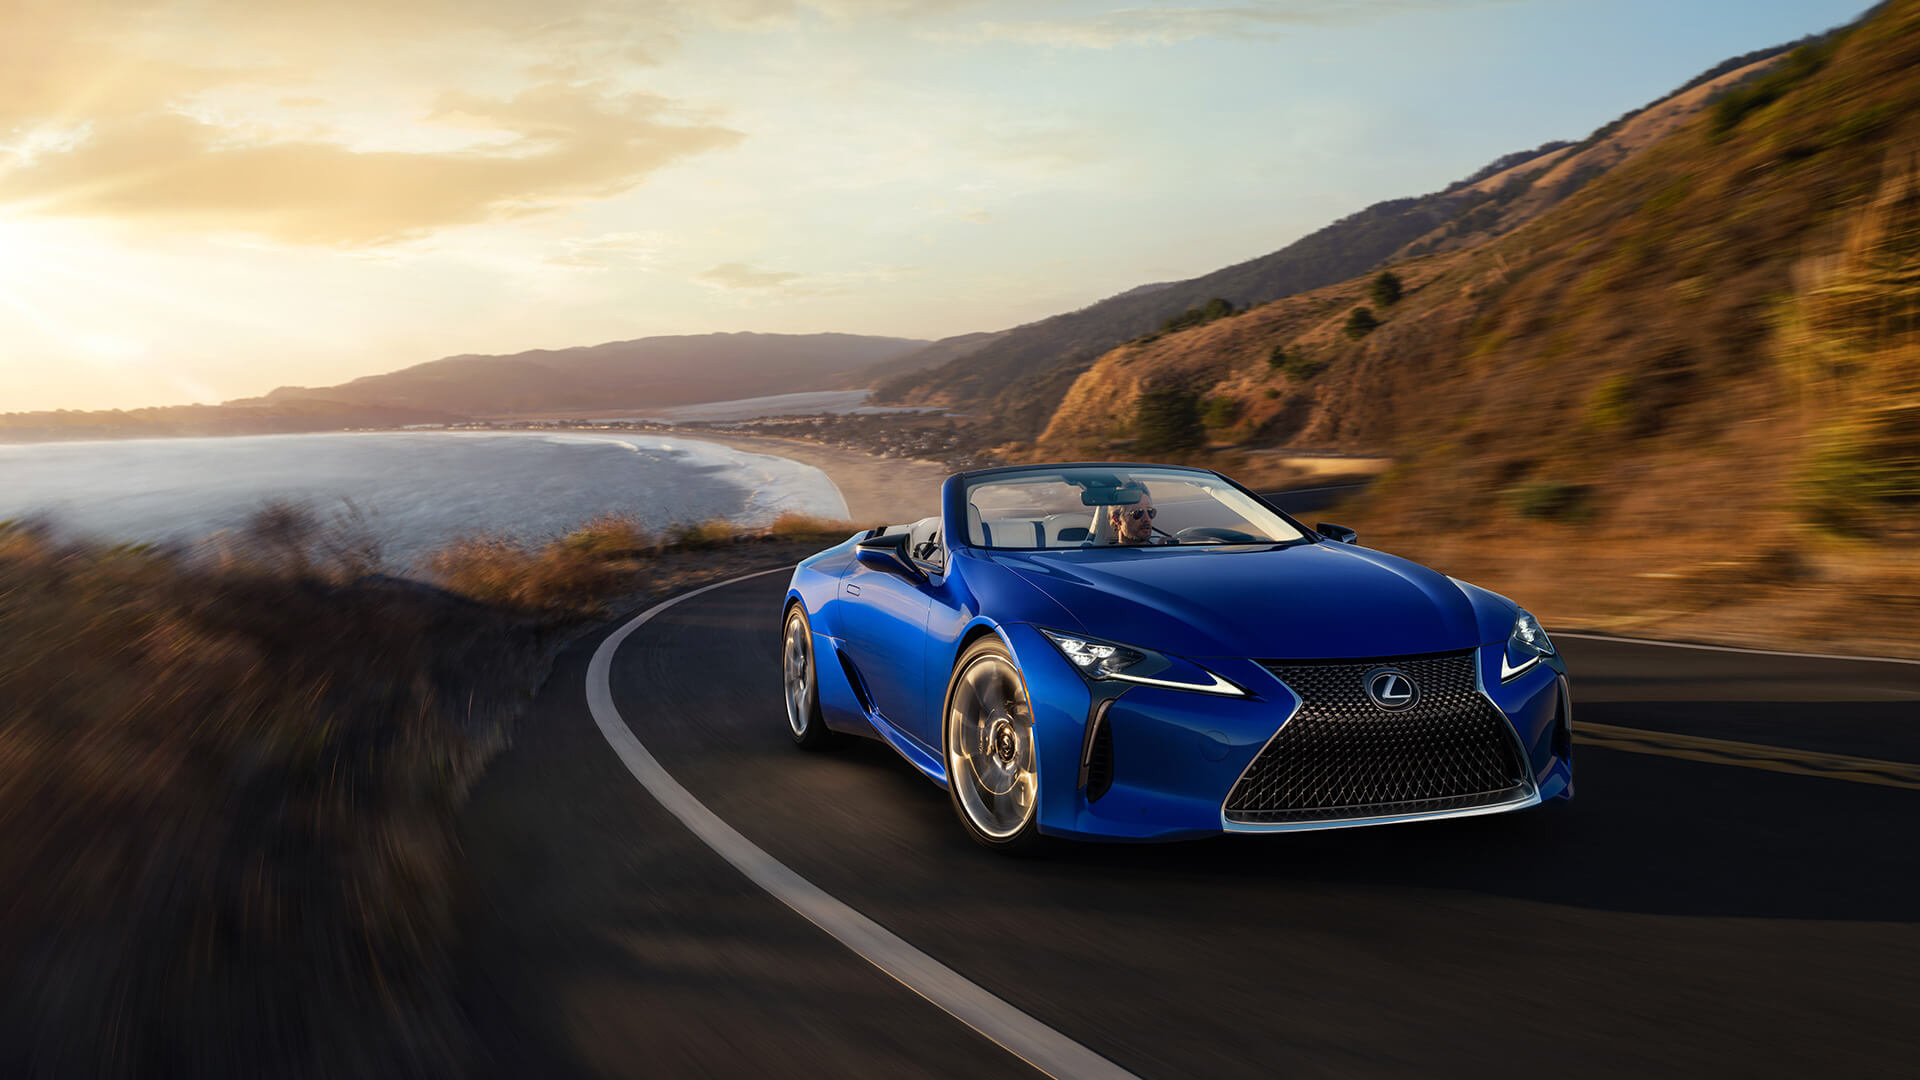 2020 lexus lc convertible GMS hero